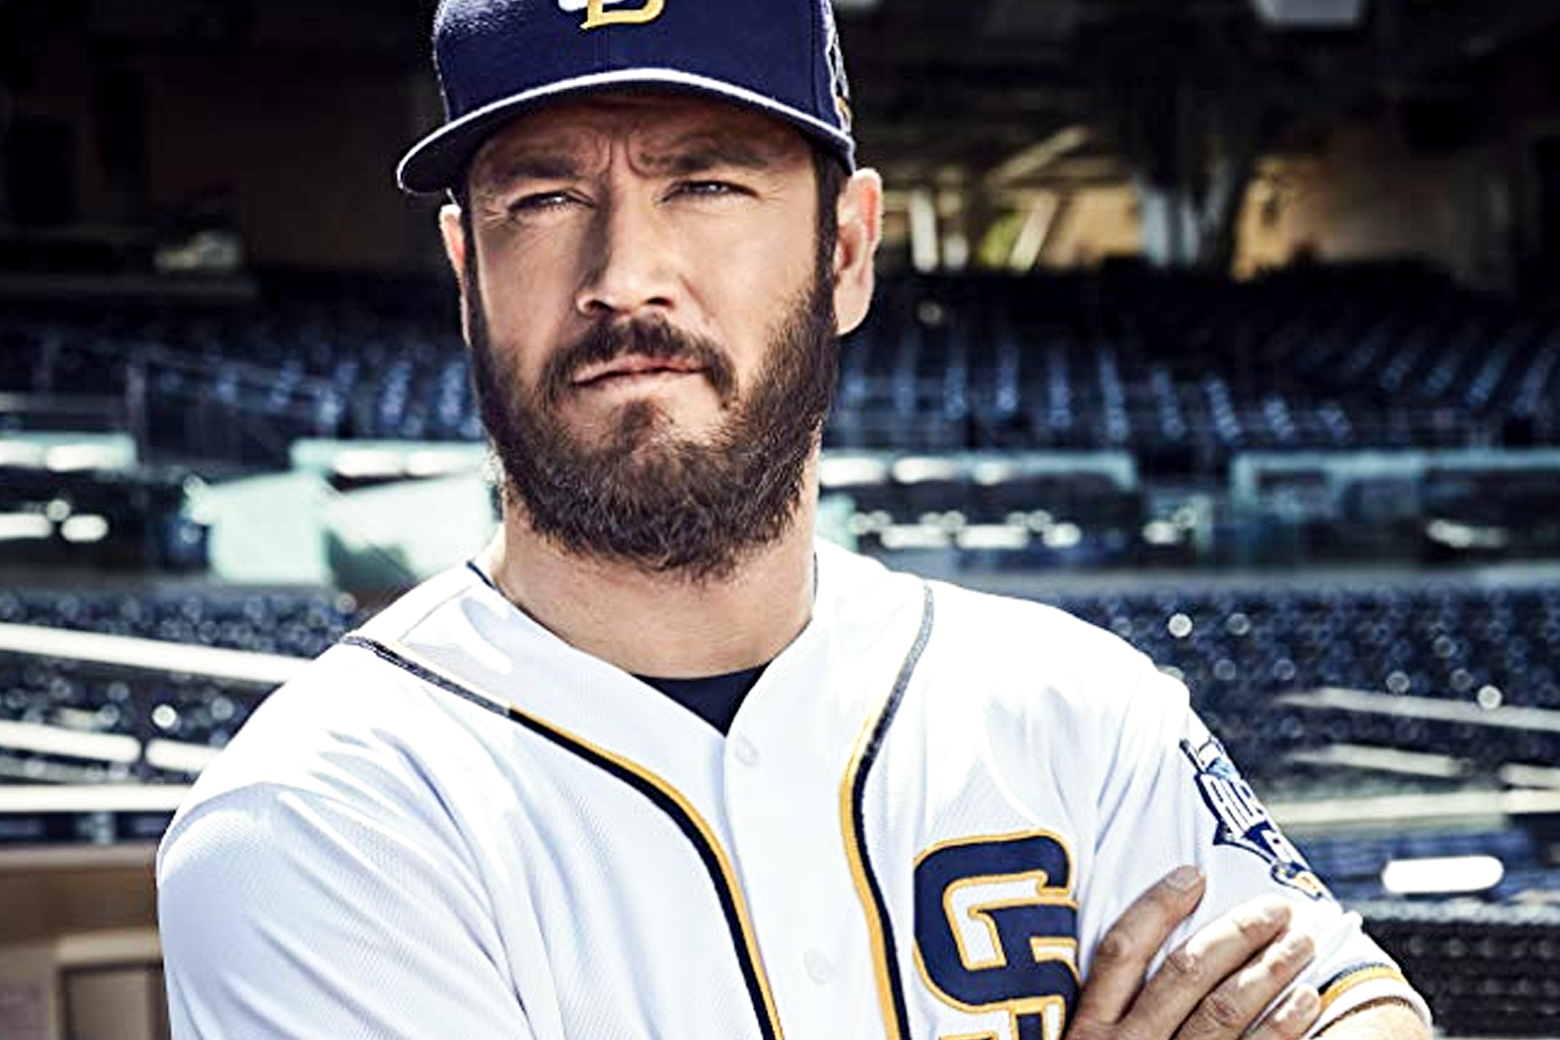 Mark-Paul Gosselaar, star of Pitch and Mixed-ish, Remains Worthy of Our Thirst